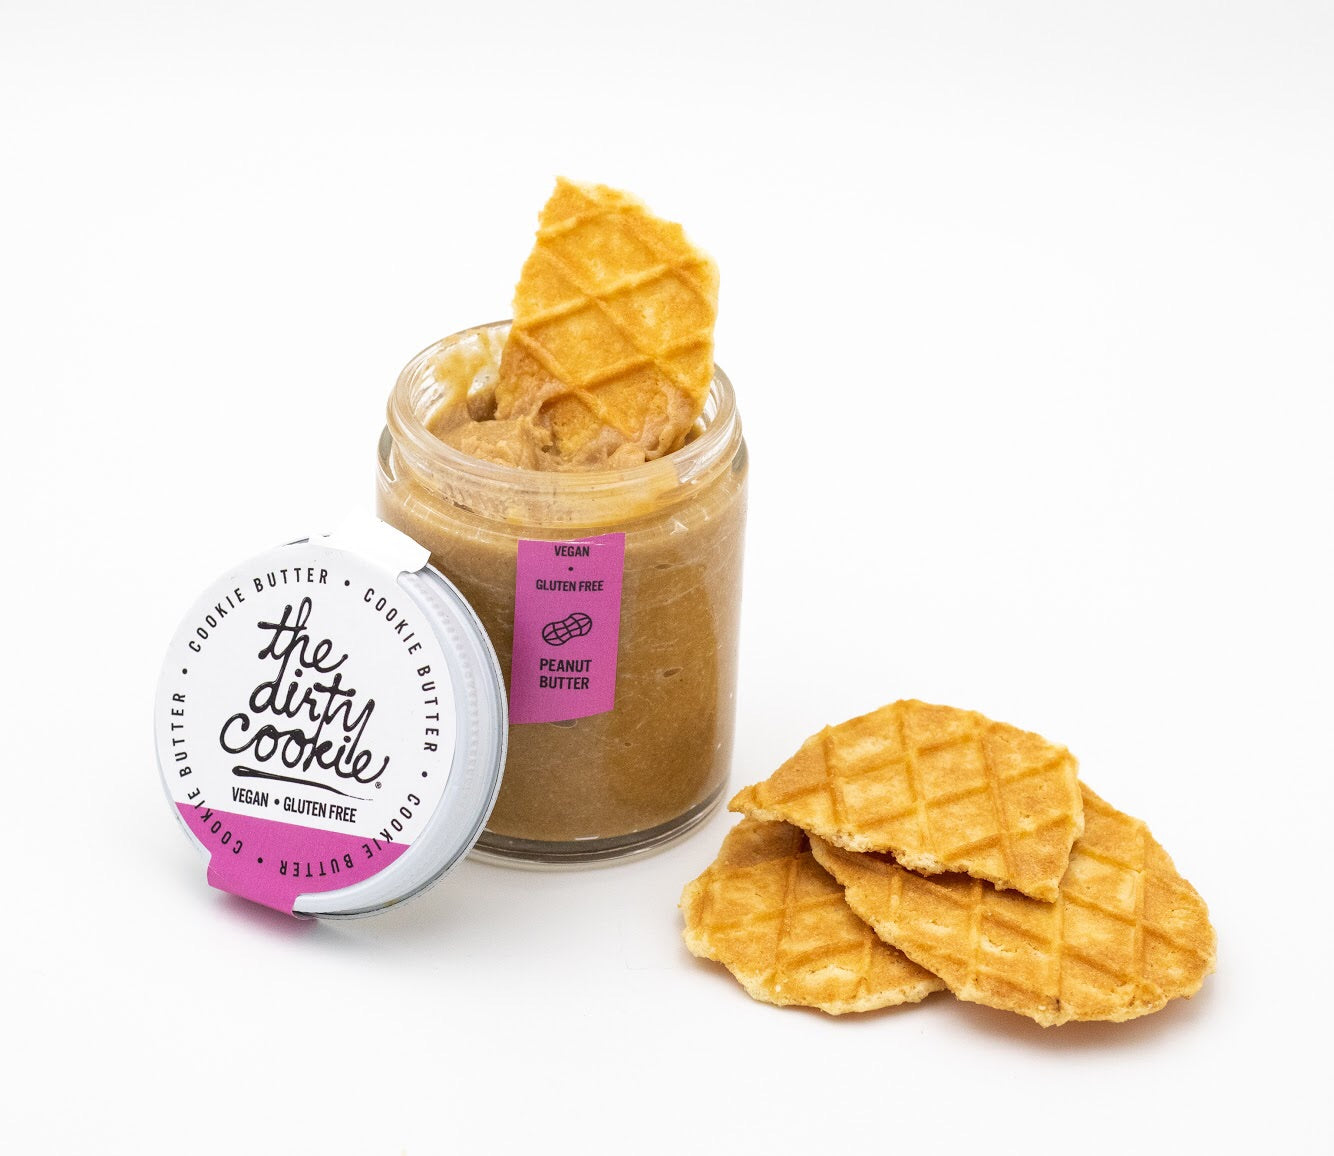 Vegan Gluten Free Peanut Butter Cookie Butter